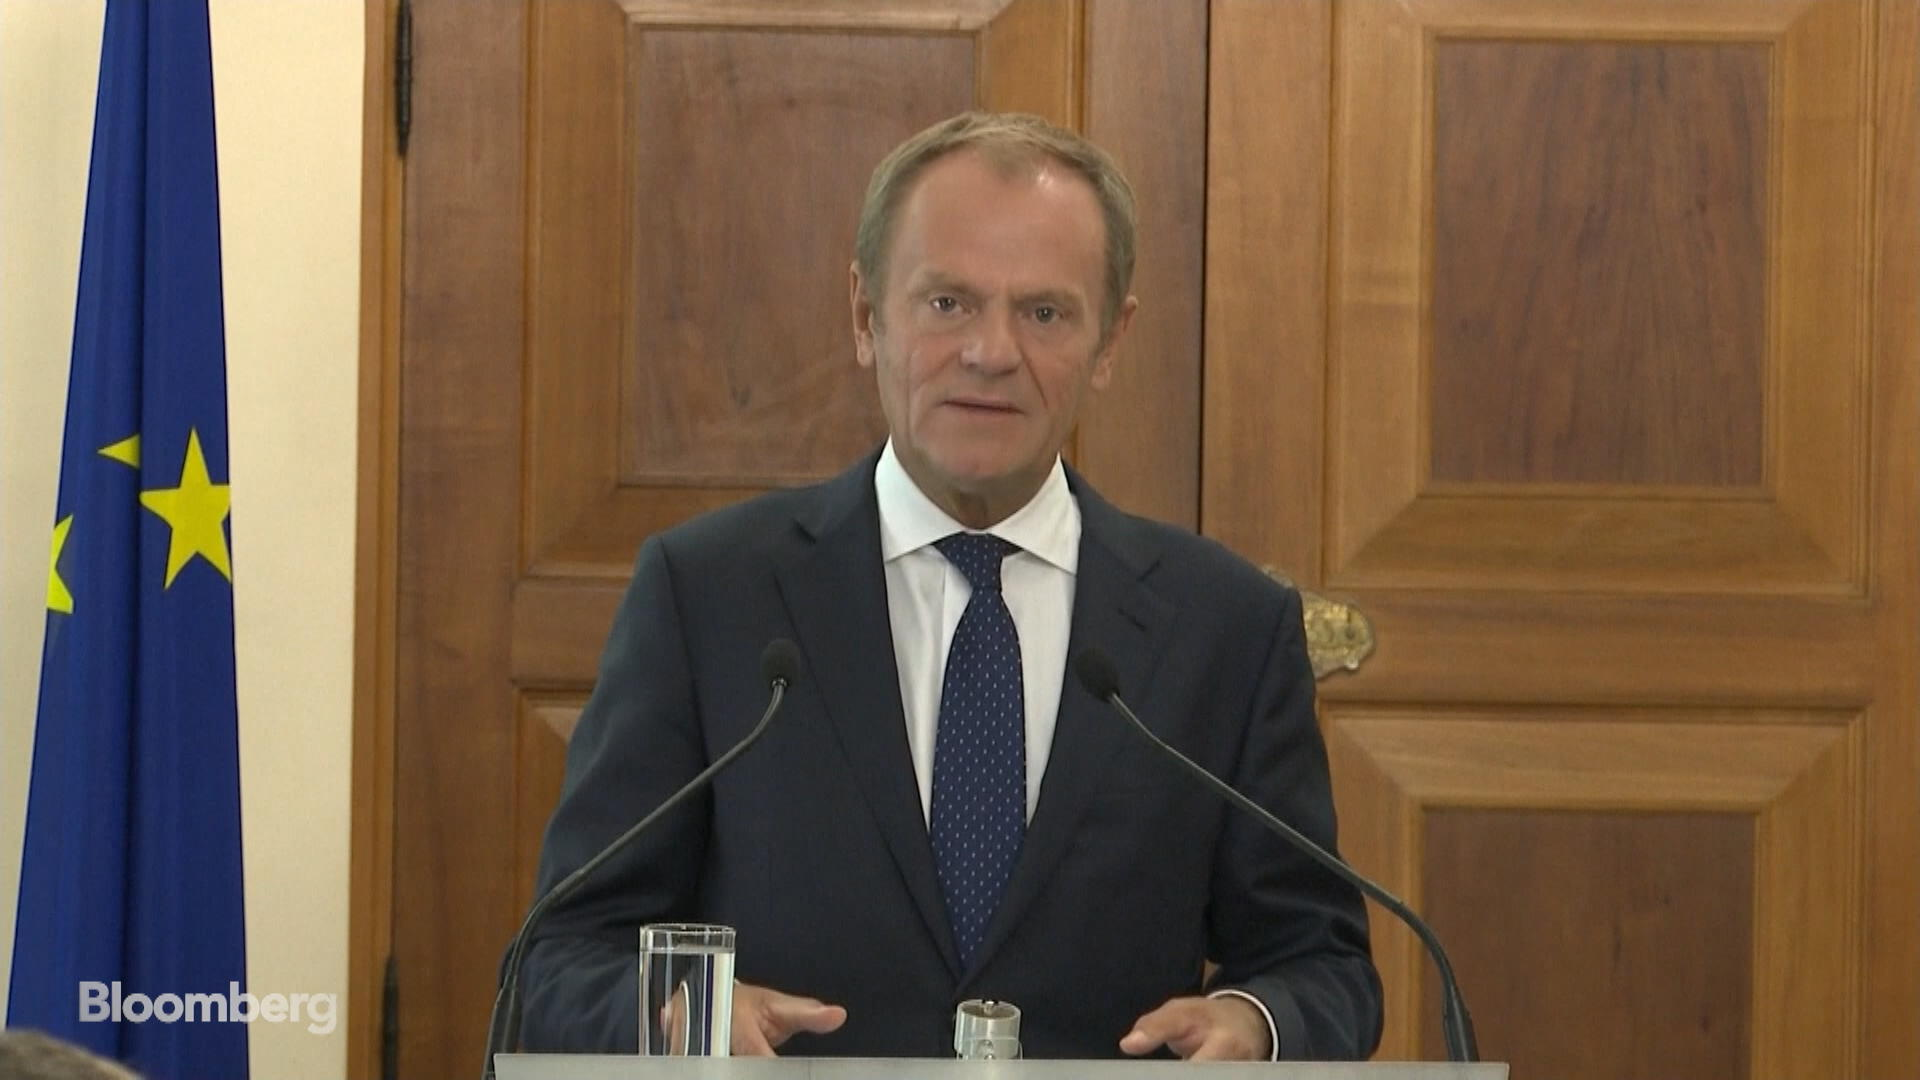 European Council President Donald Tusk Sees 'Promising' Signals for Brexit Deal